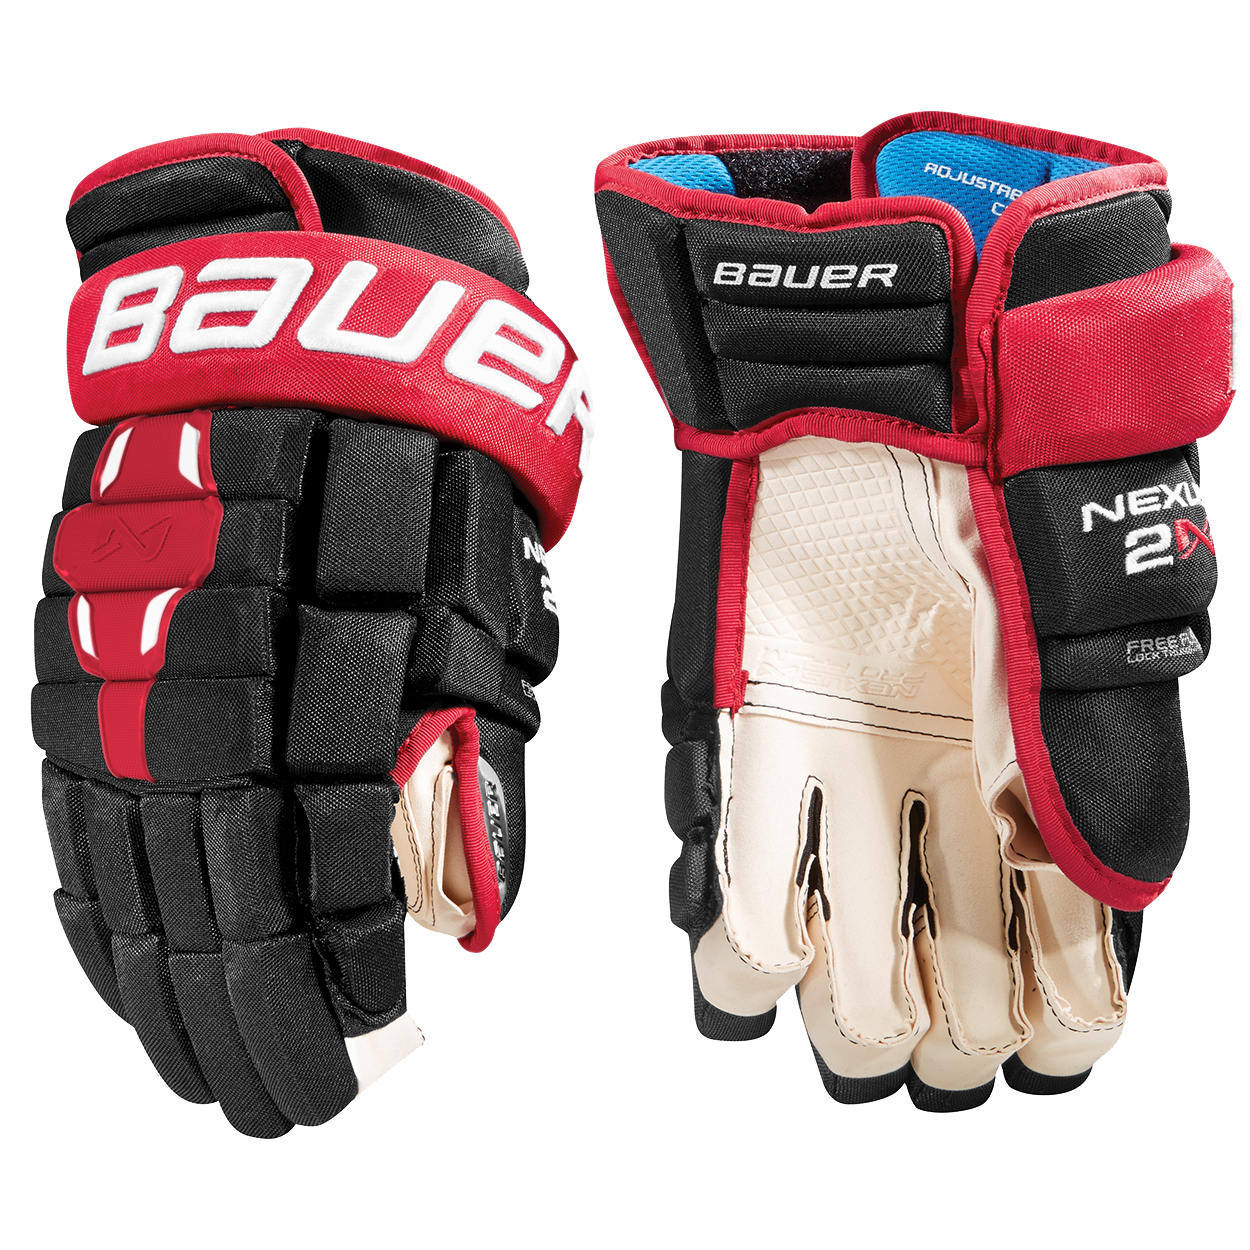 NEXUS 2N Glove - Senior,BLACKRED,medium